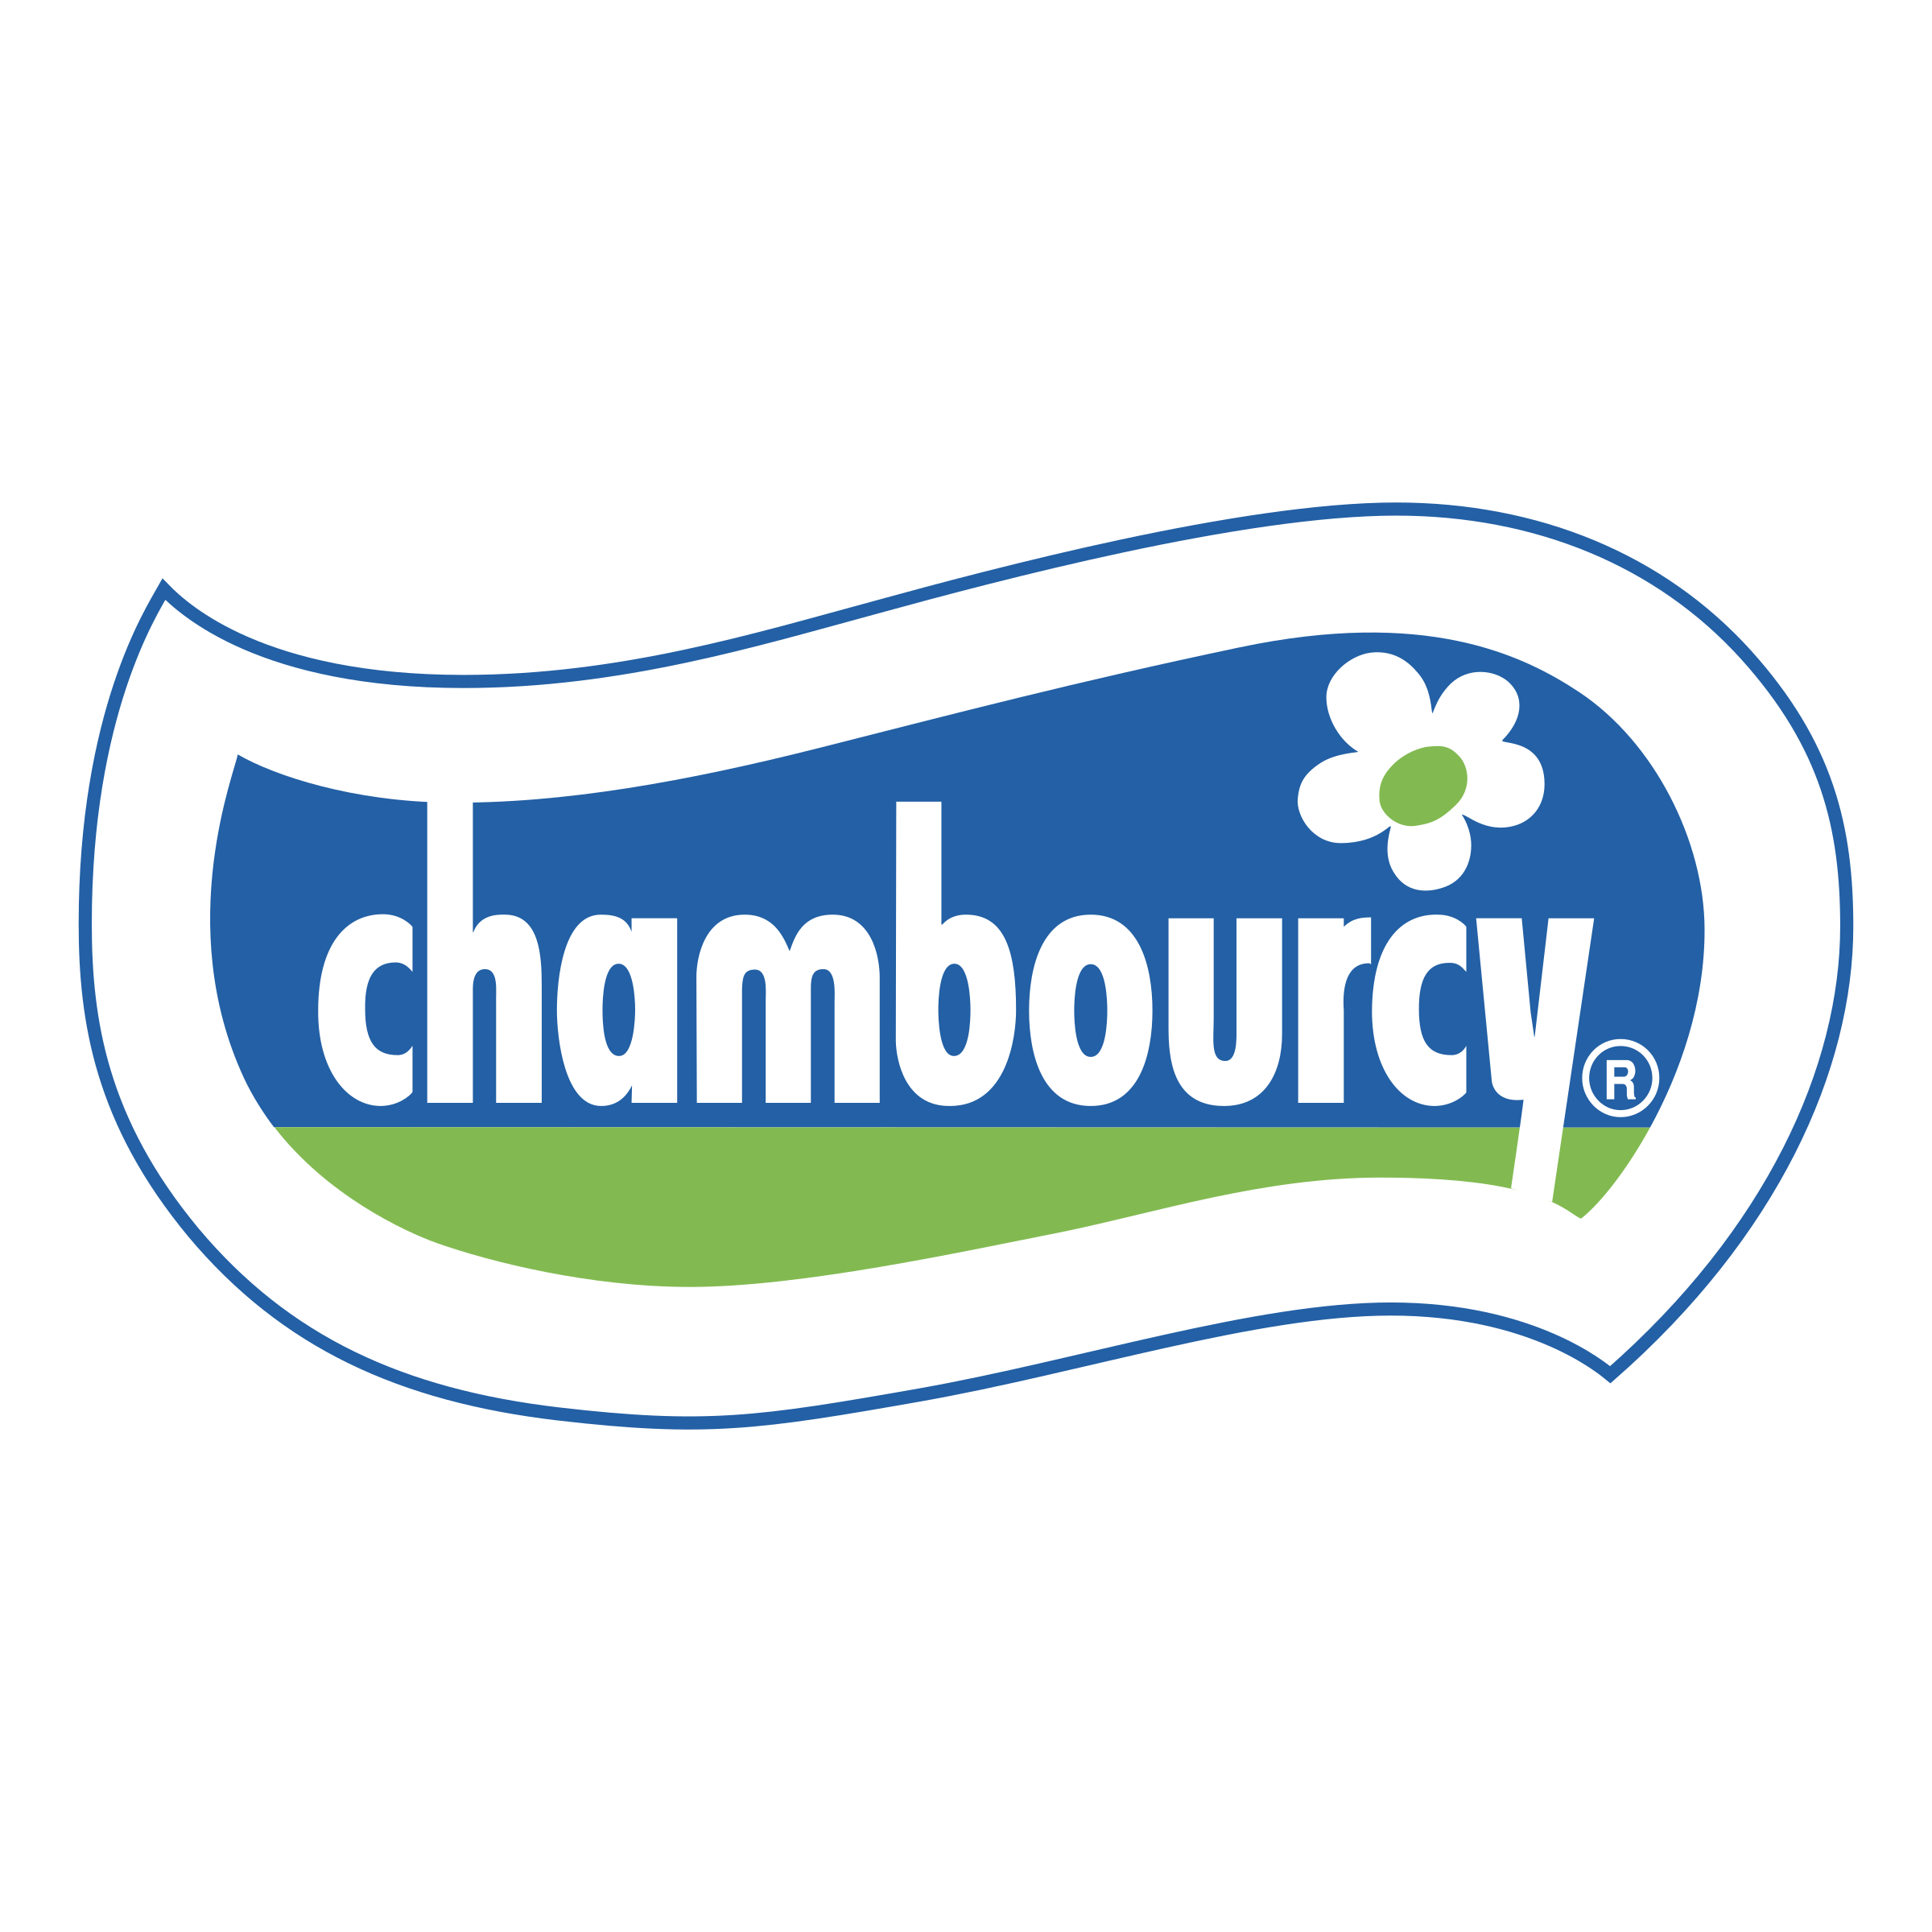 Chambourcy Logo PNG Transparent & SVG Vector.